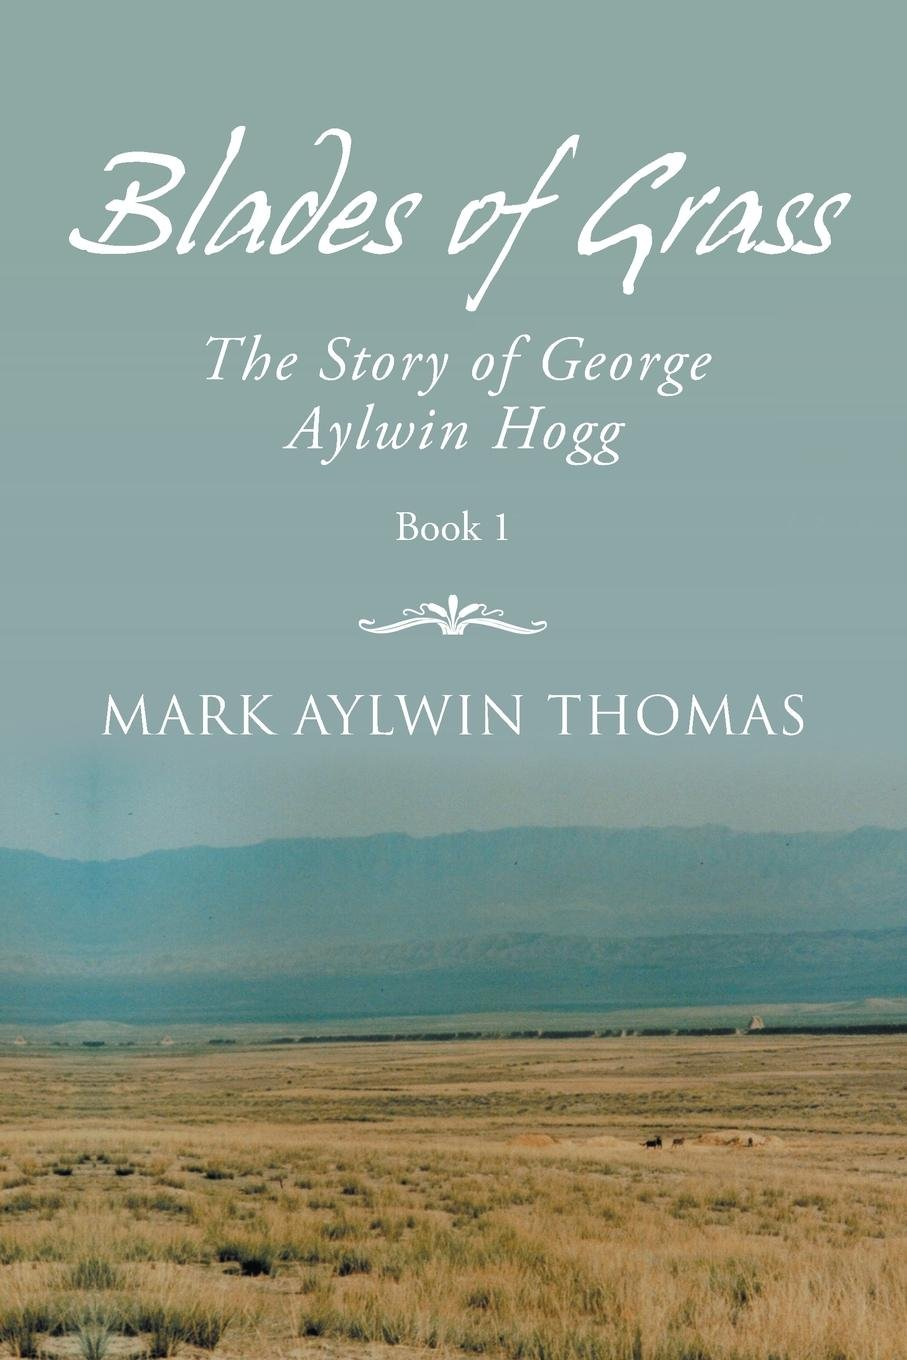 Download Blades of Grass: The Story of George Aylwin Hogg ebook